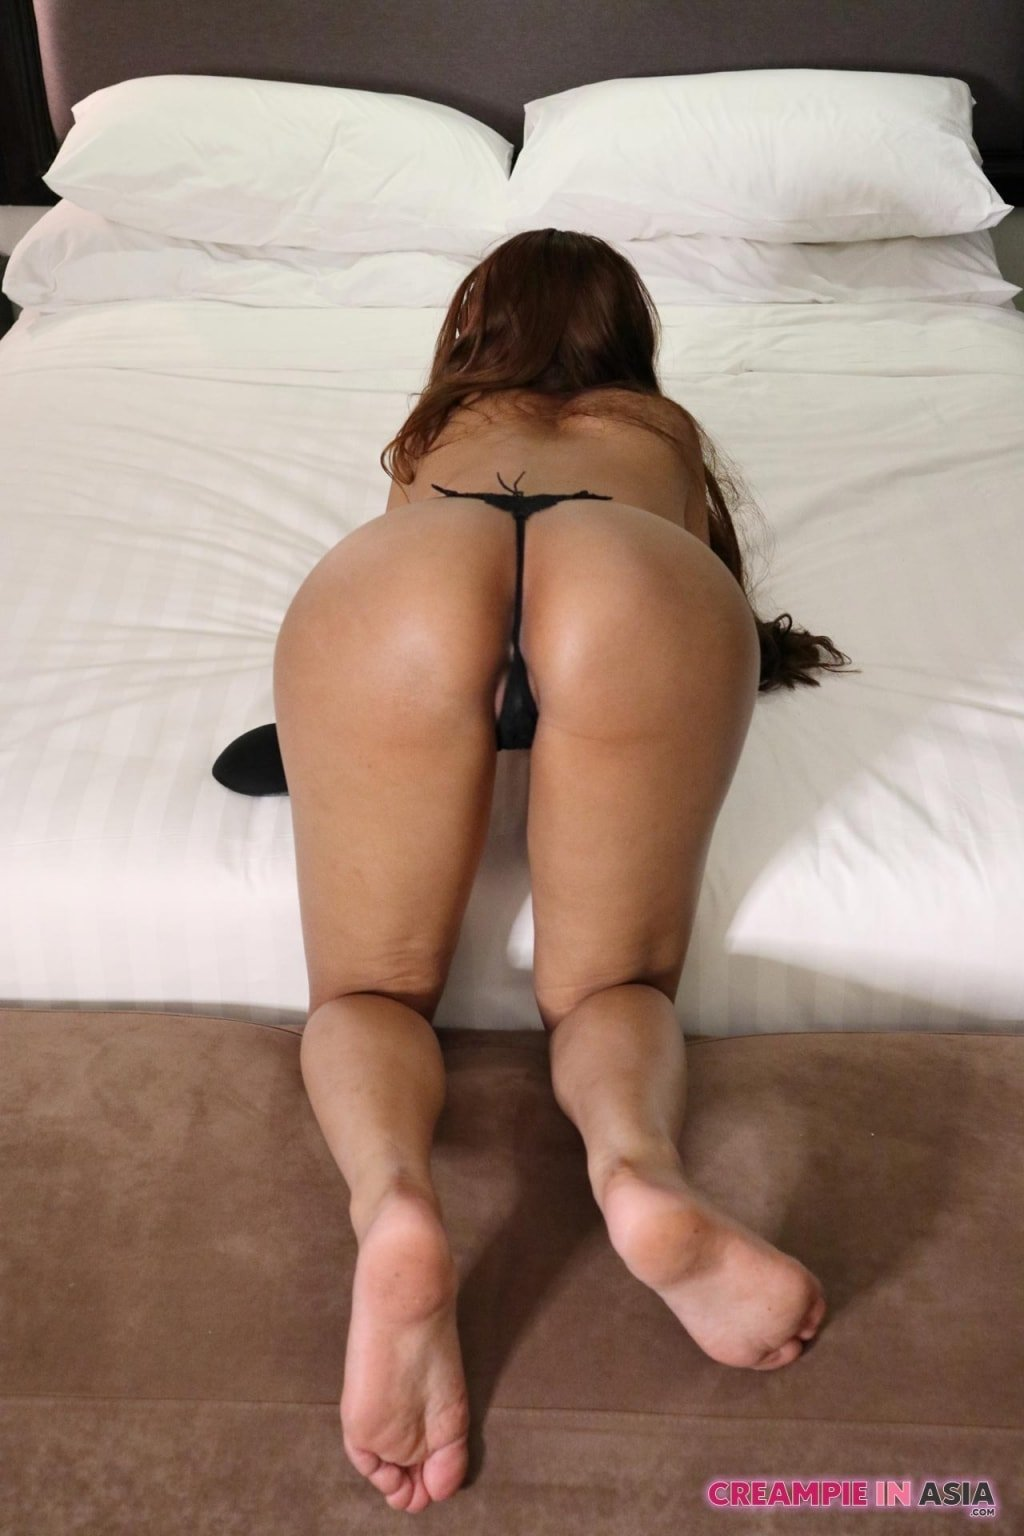 Wife agreed to strip at buddies bachelor party